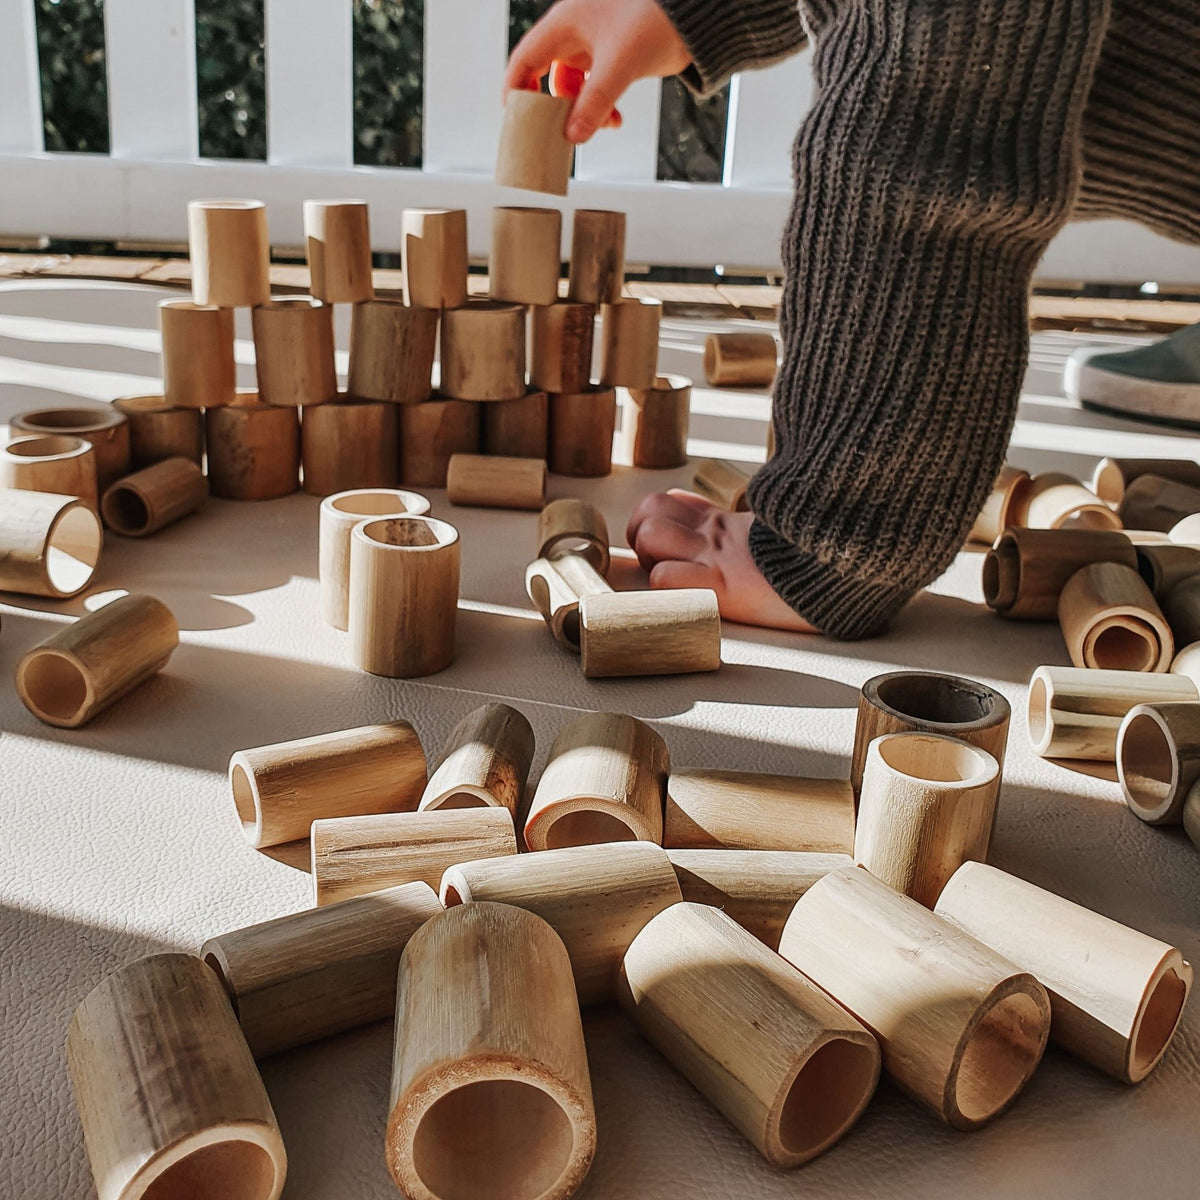 Bamboo Balancing Play set (100 pieces)